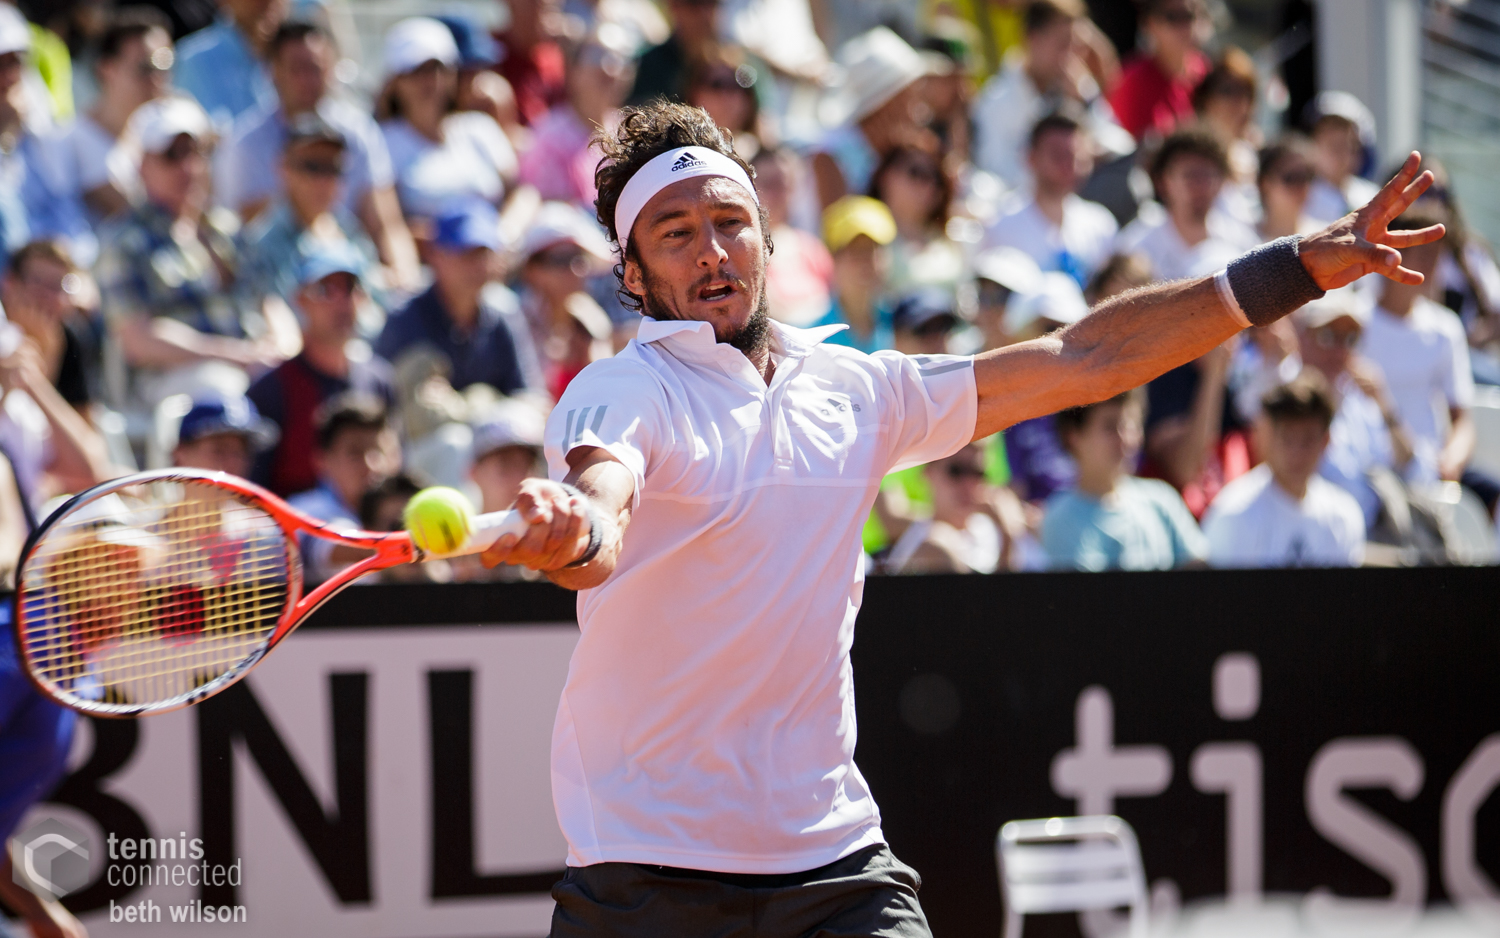 Monaco defeated Lajovic 6-3, 6-7(5), 6-2